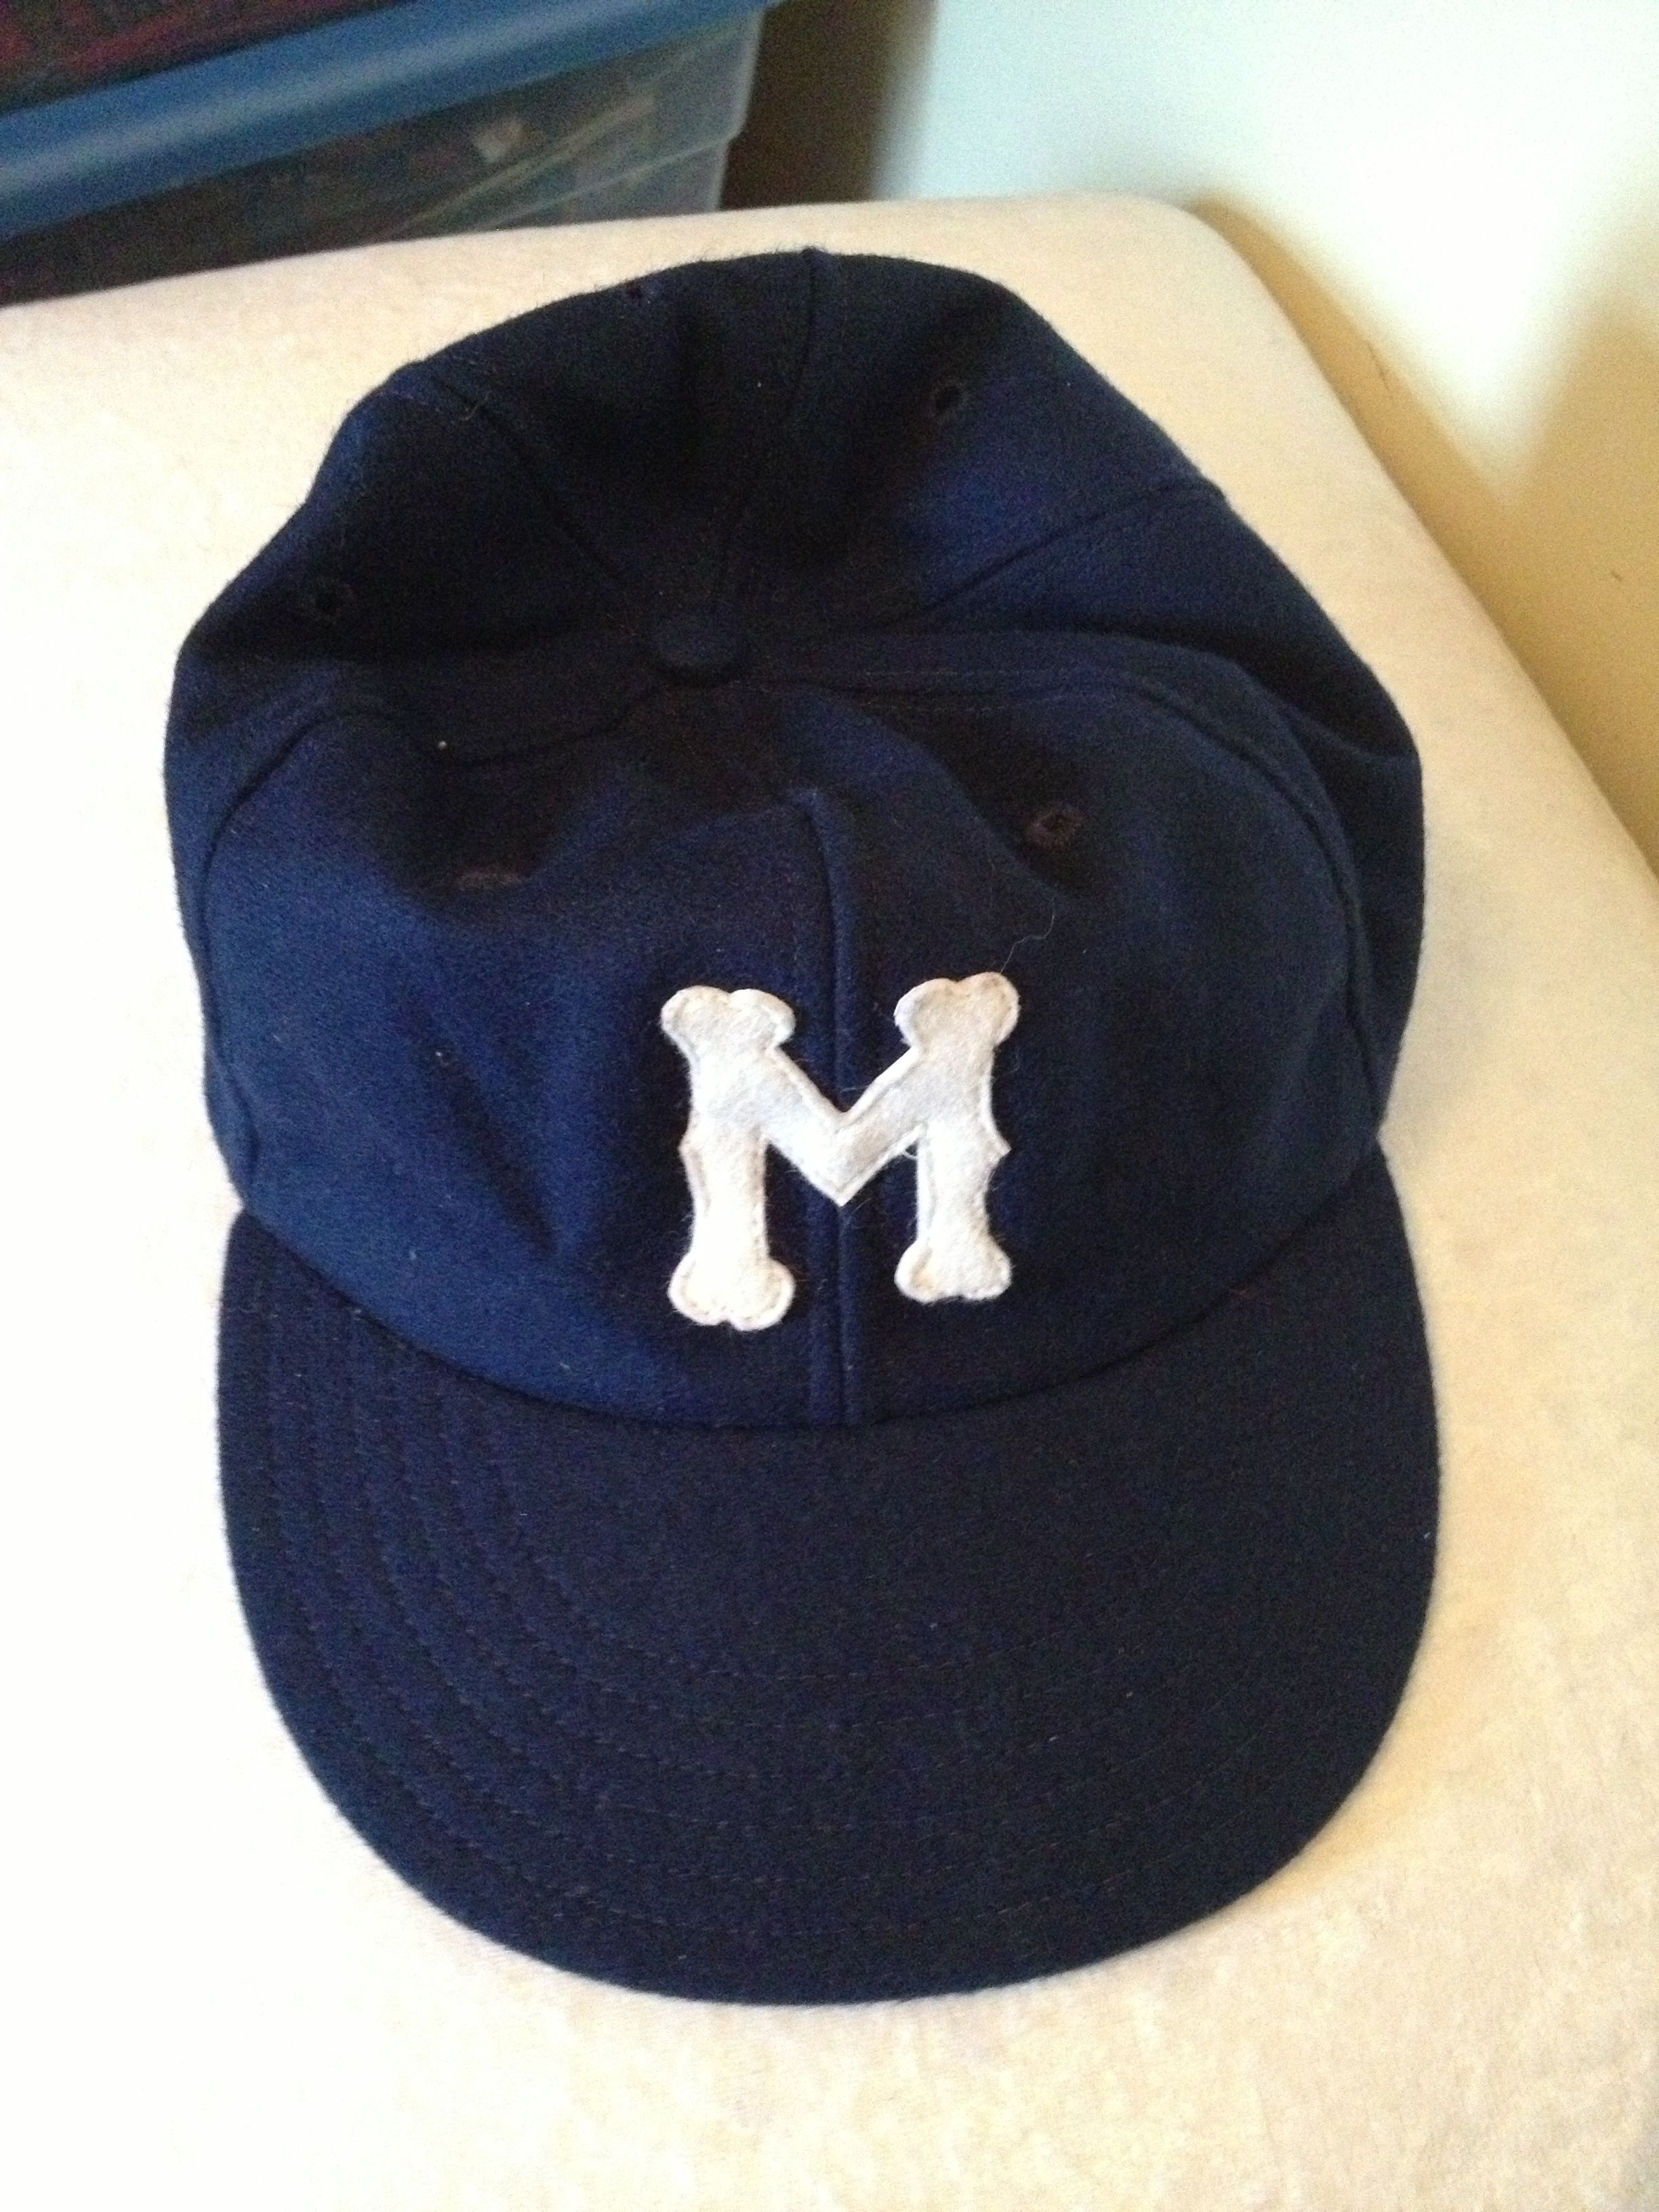 55566a88c62 1946 Montreal Royals baseball cap made for me by Cooperstown Ball ...